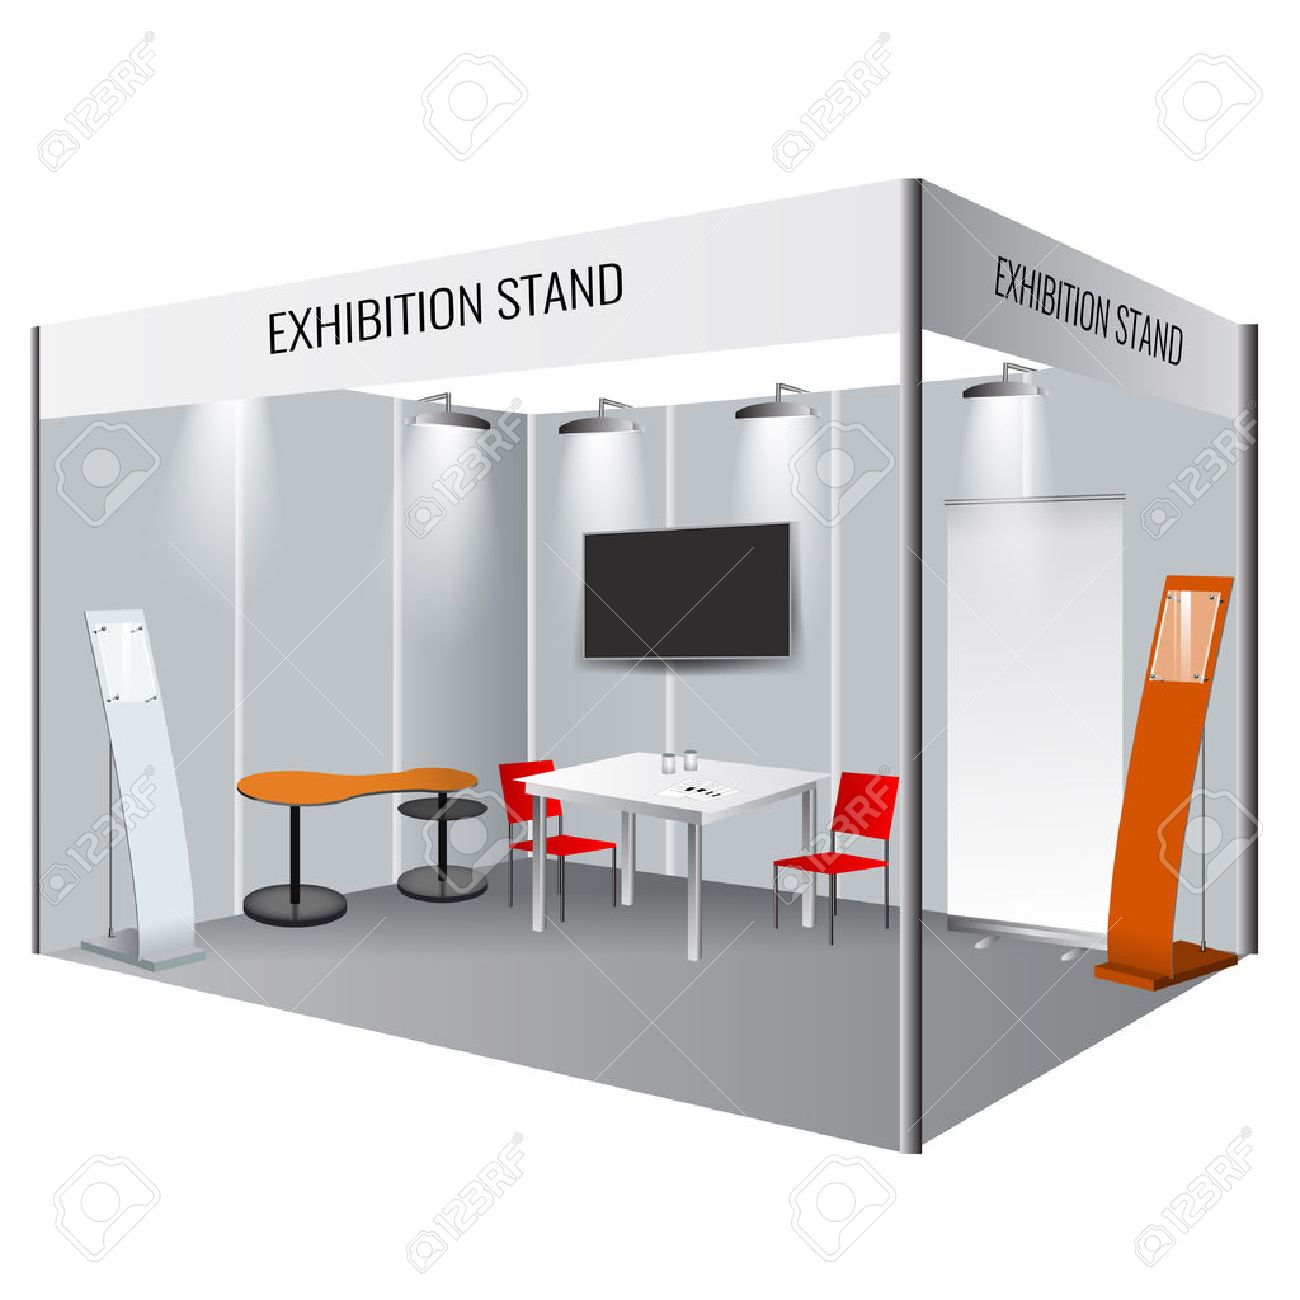 Exhibition Stand Free Vector : Illustrated unique creative exhibition stand display design